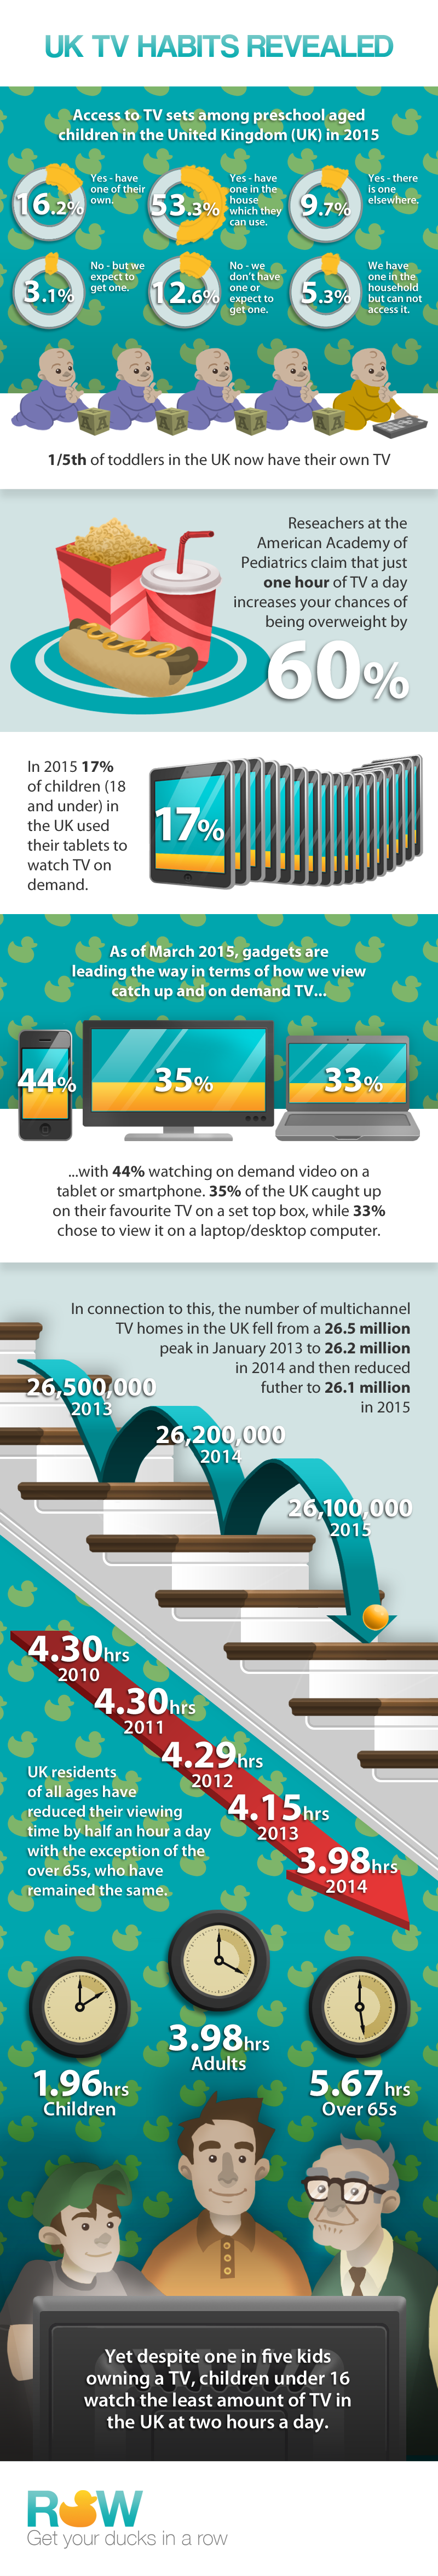 uk-tv-habits-revealed